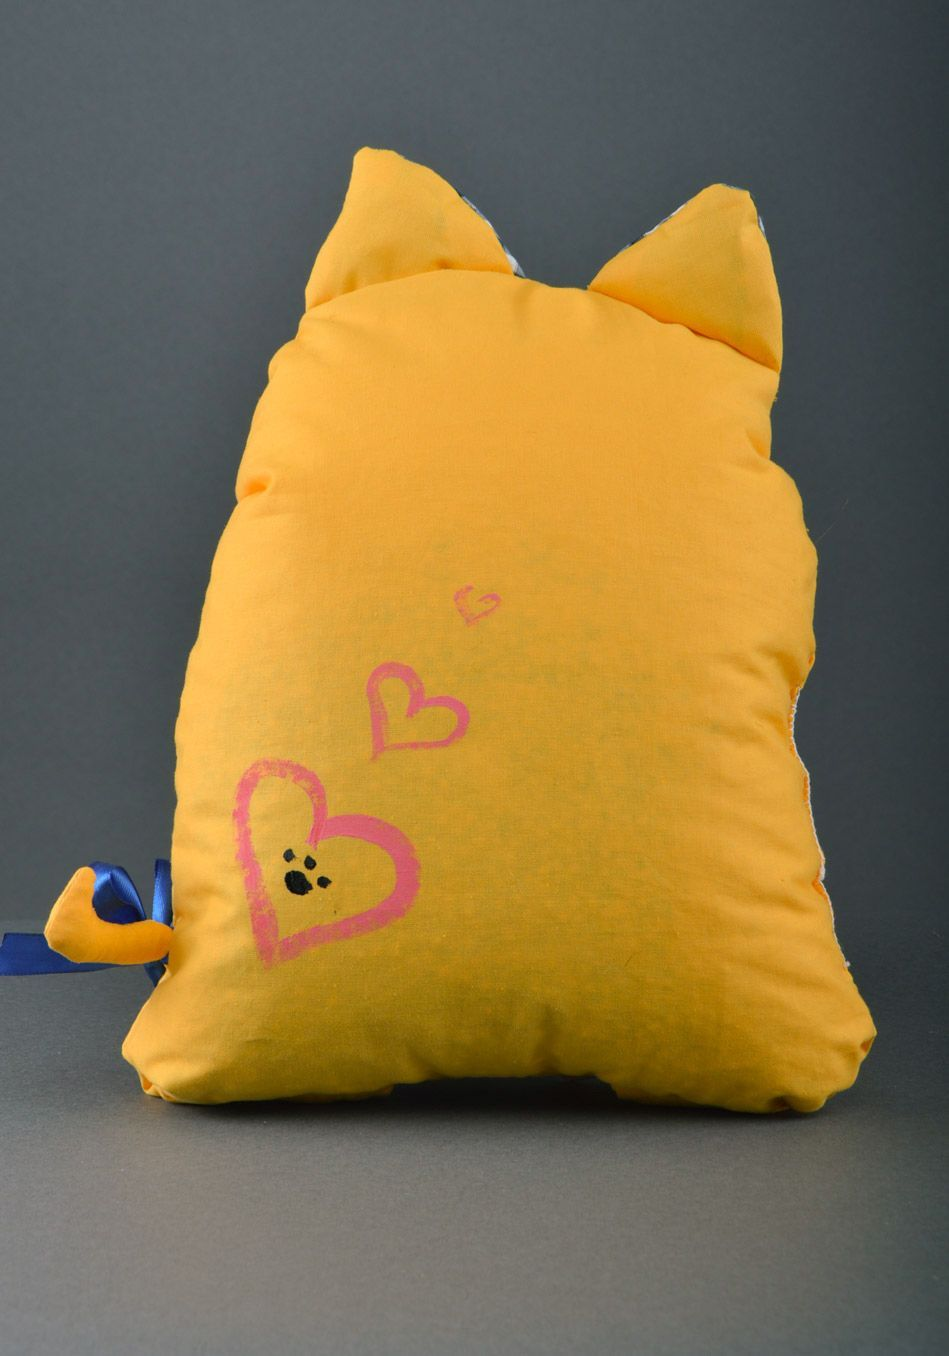 Large handmade aroma sachet pillow yellow toy cat with herbs inside photo 2